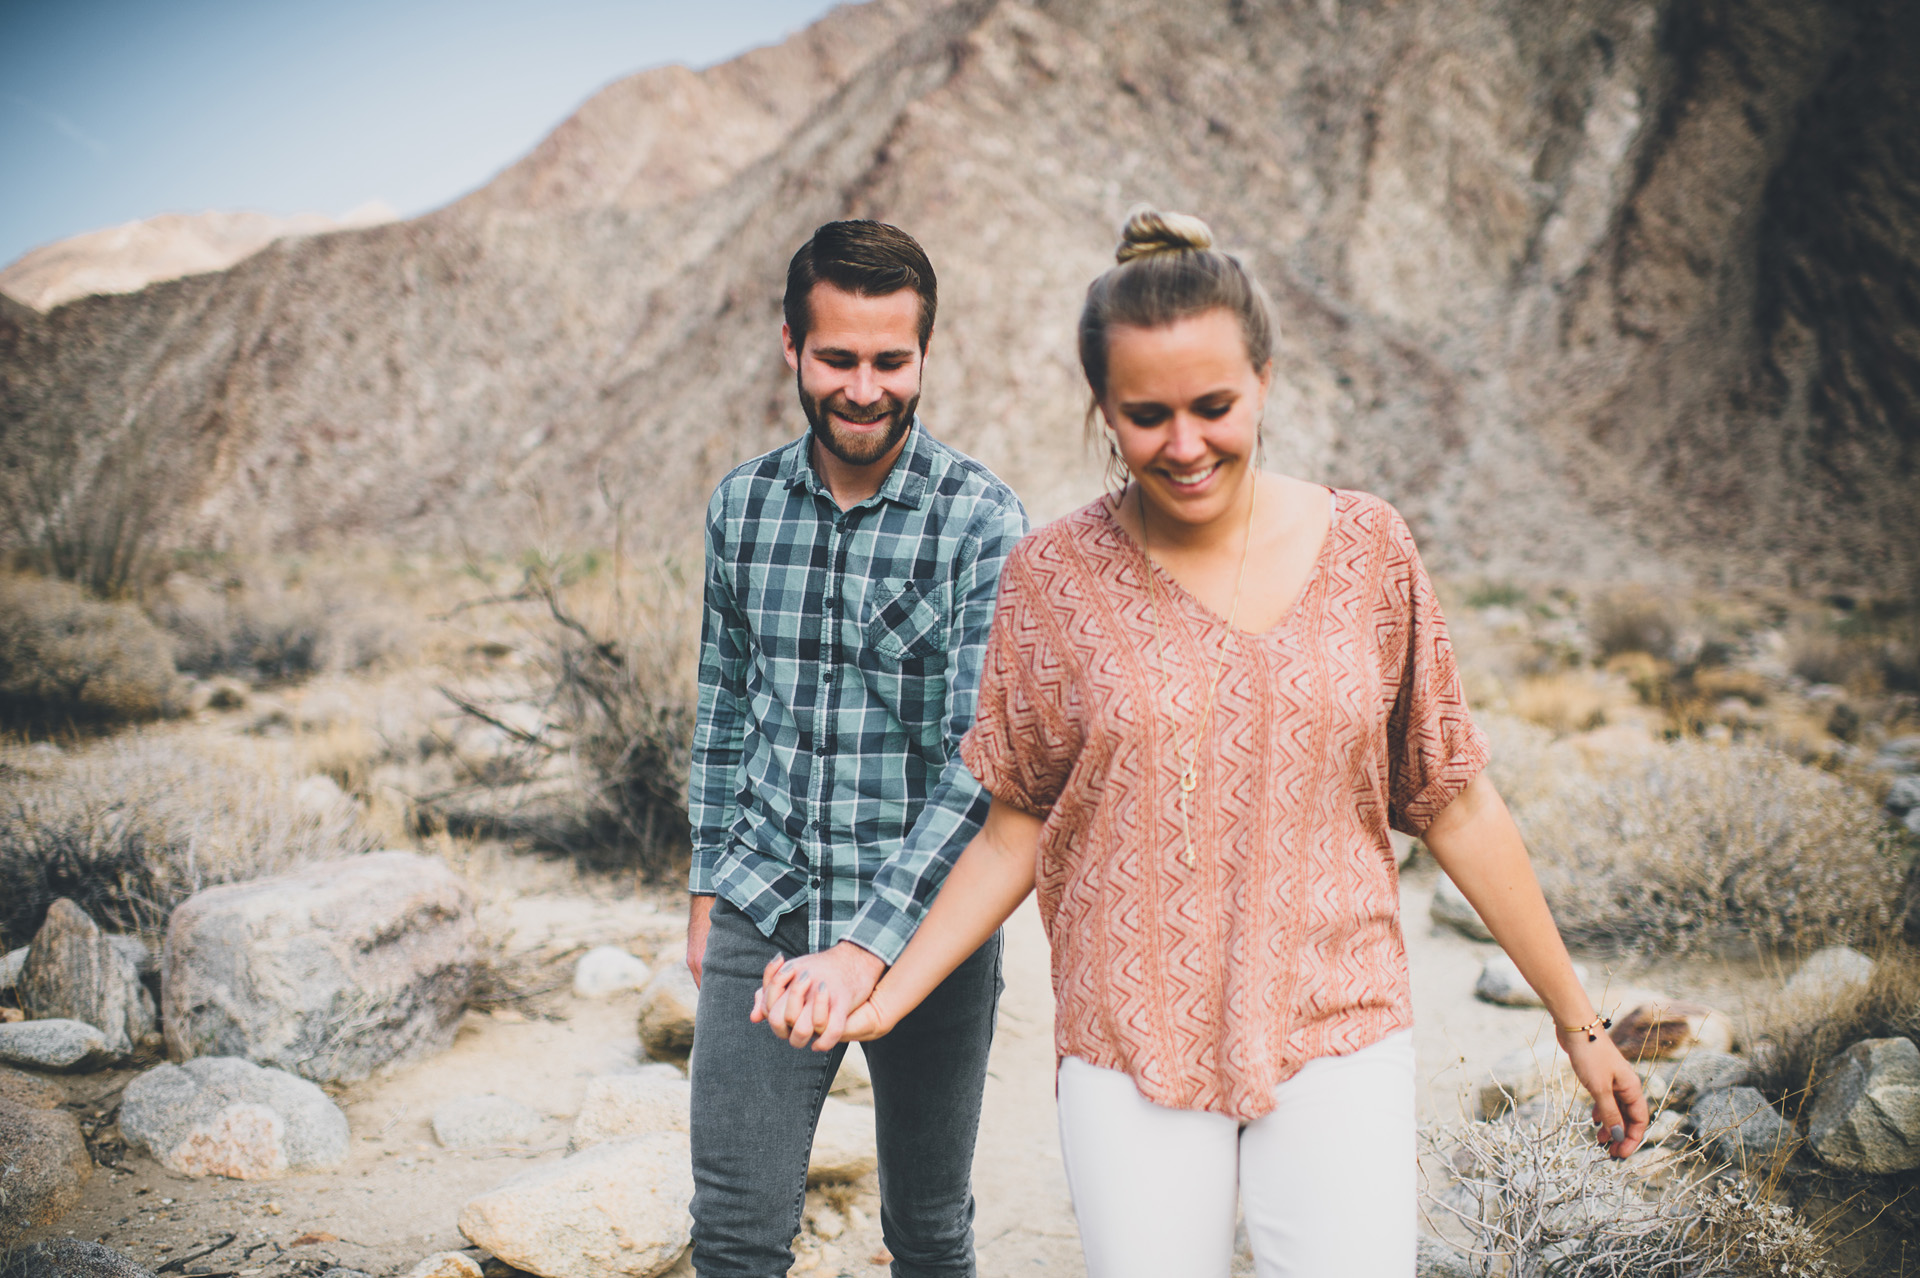 california-desert-engagement-013